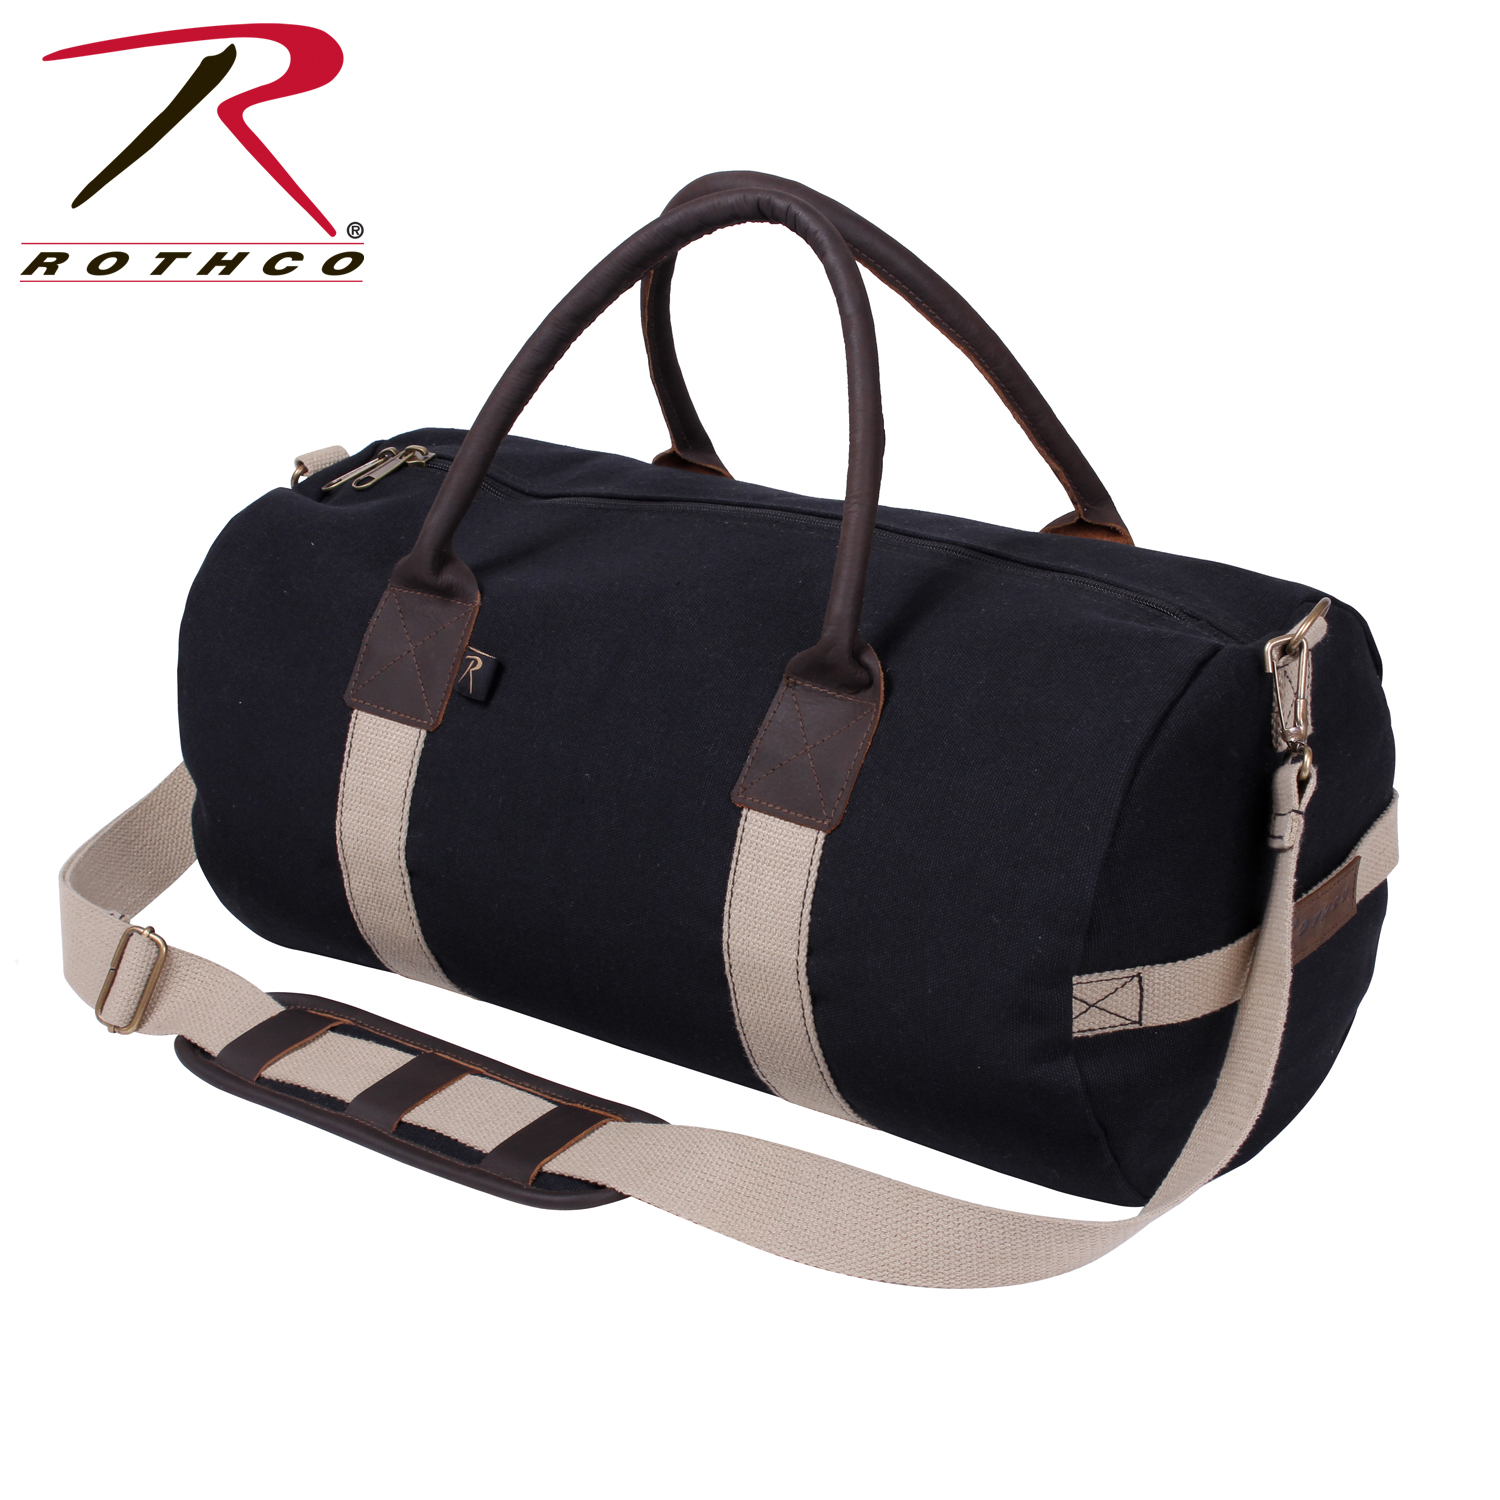 36b8cbd9a505 Rothco Canvas   Leather Gym Duffle Bag